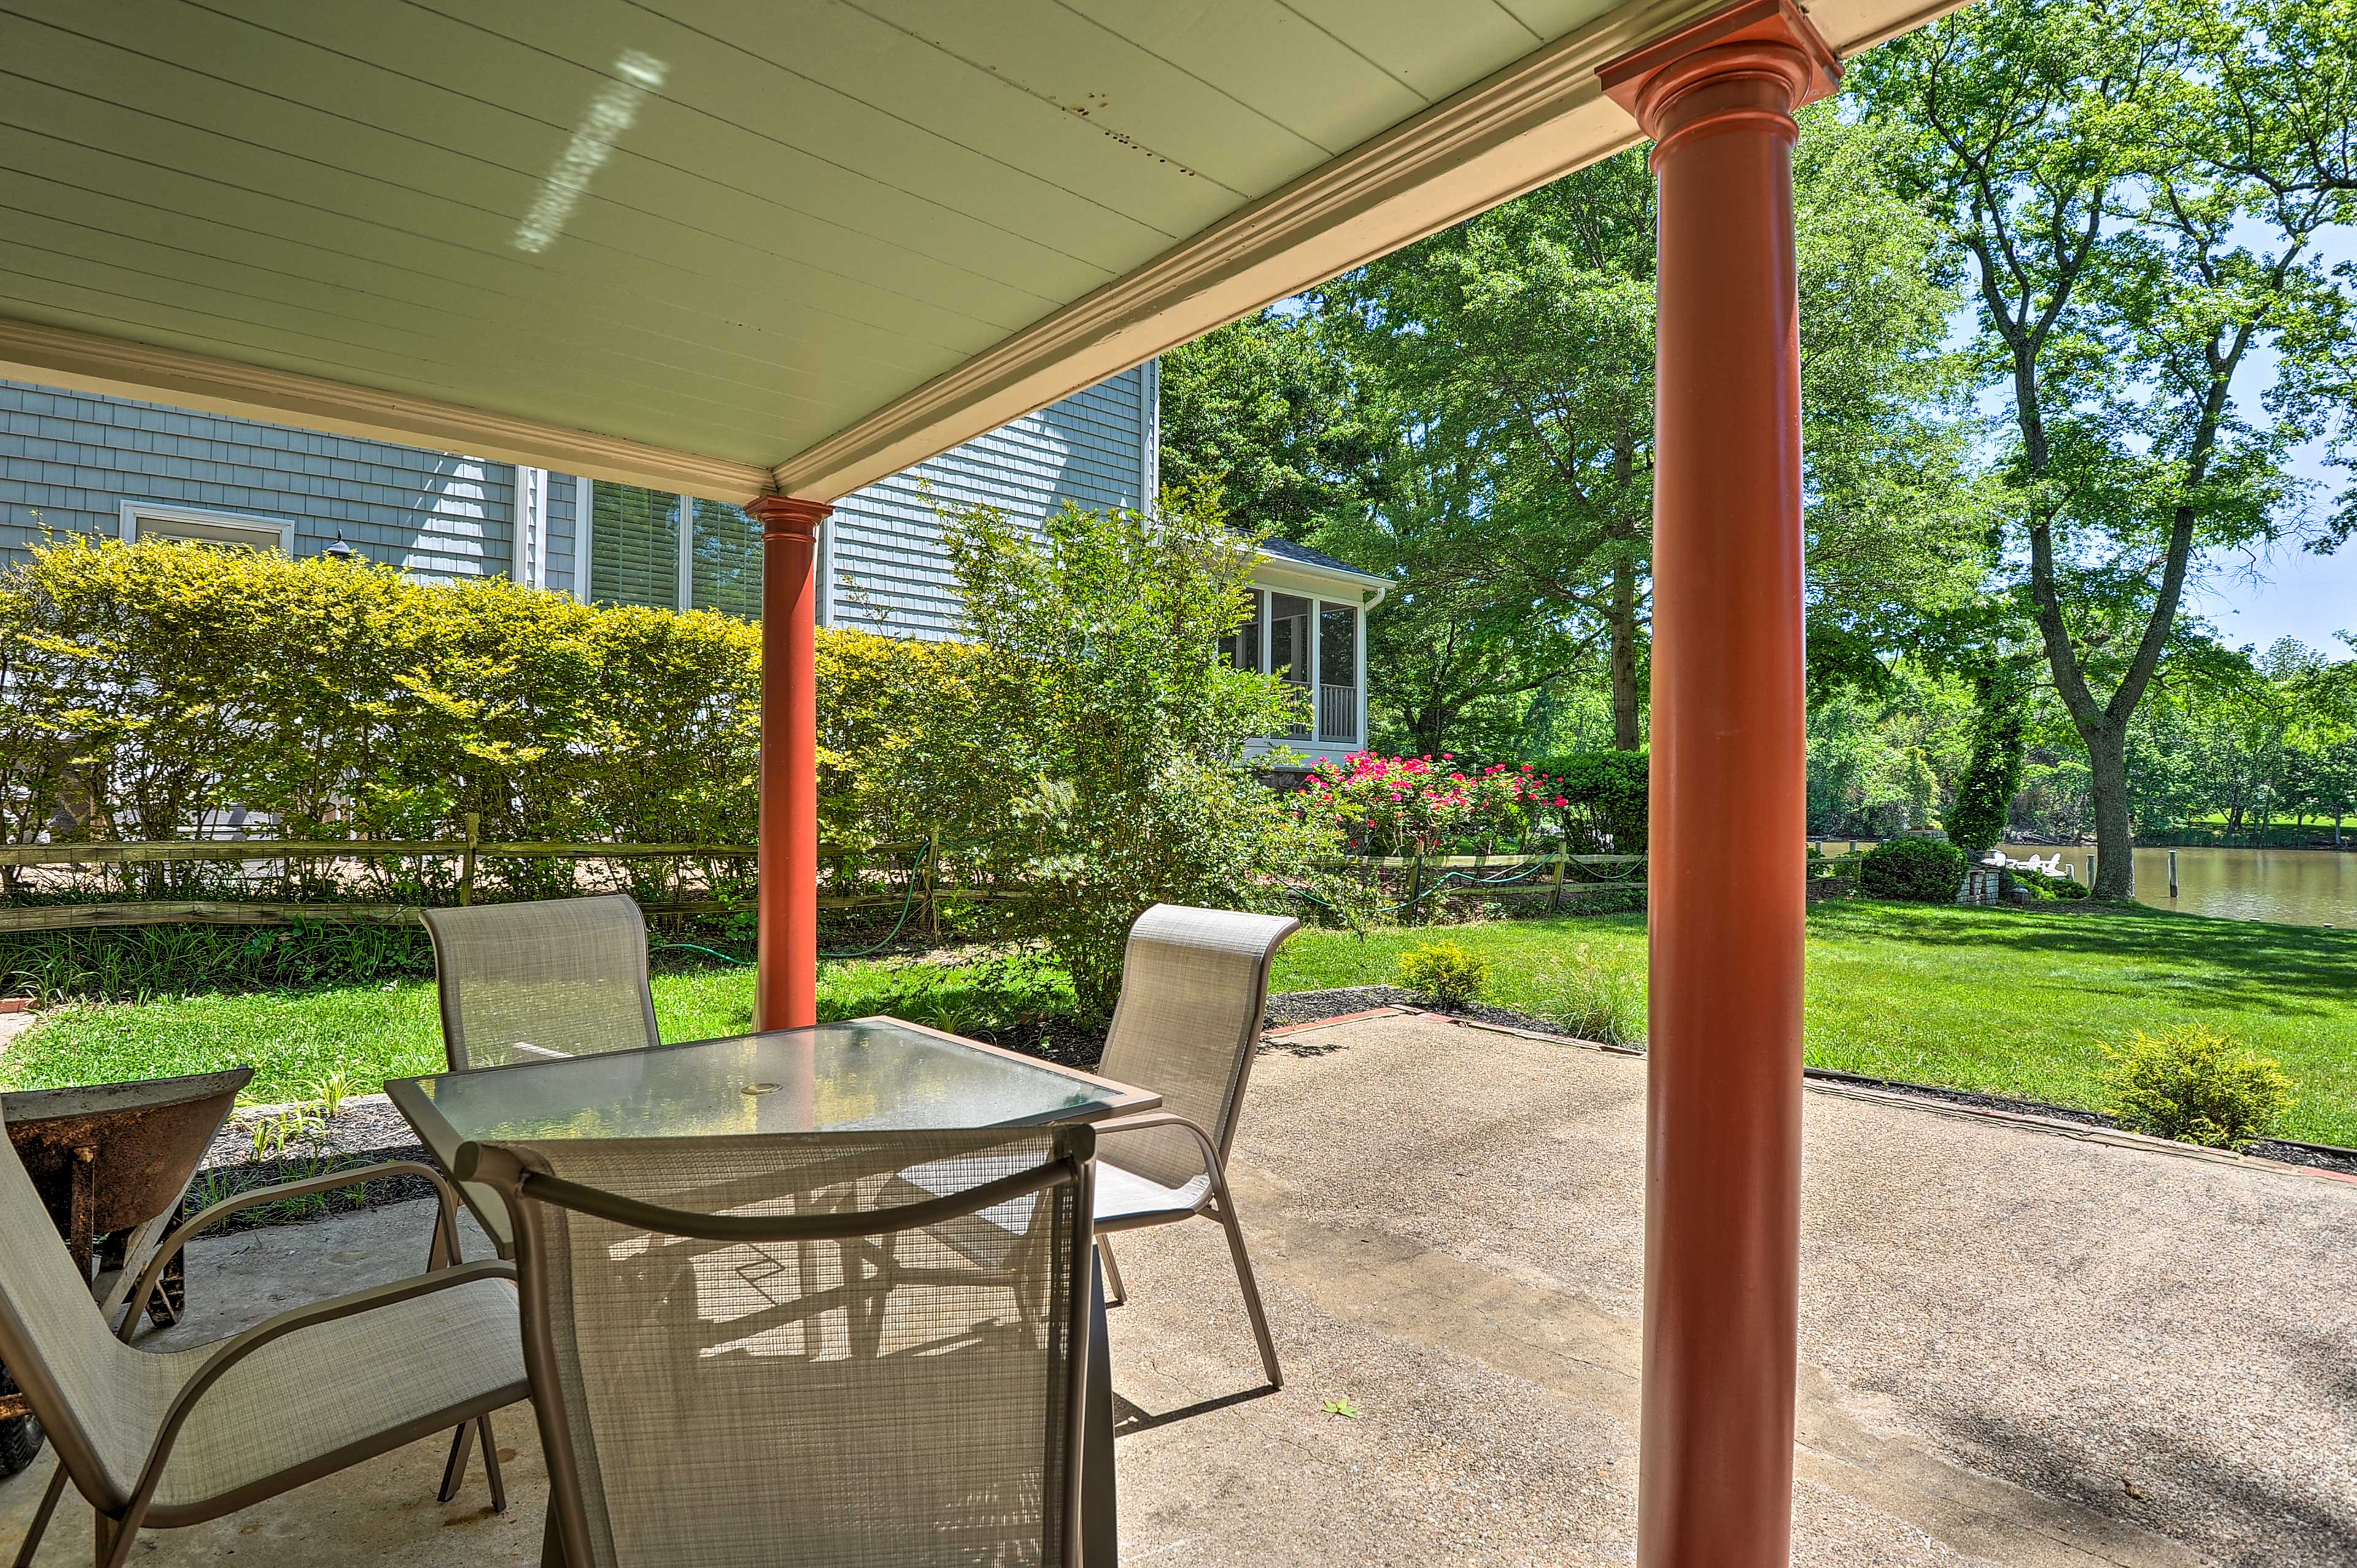 Dine together on the shady patio.